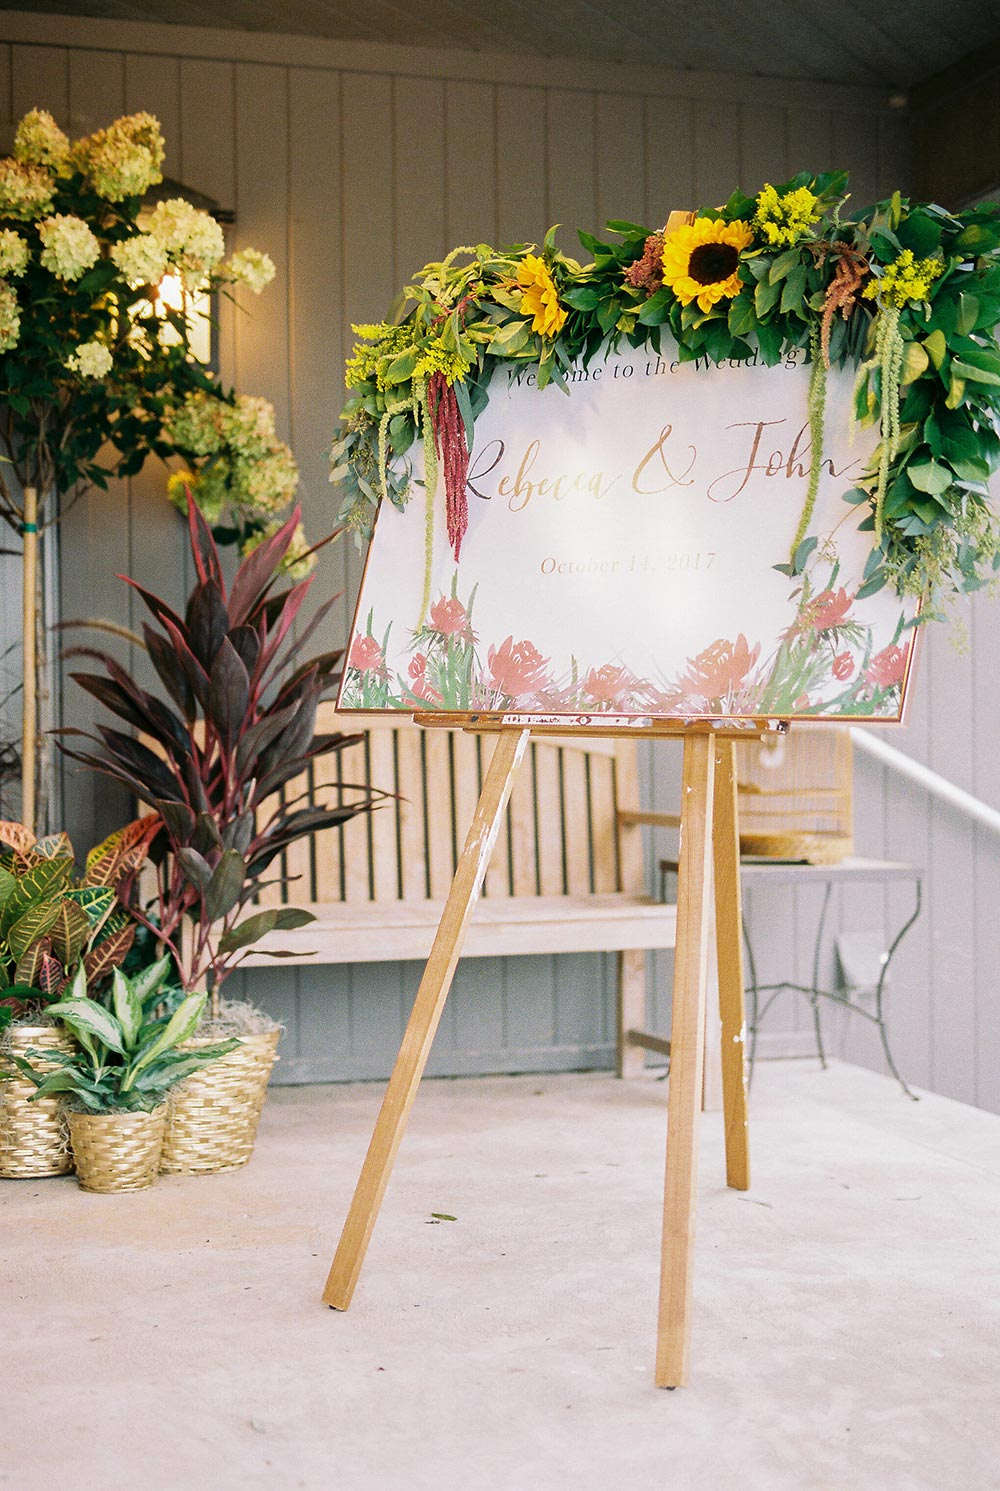 floral wedding signage with sunflower garland